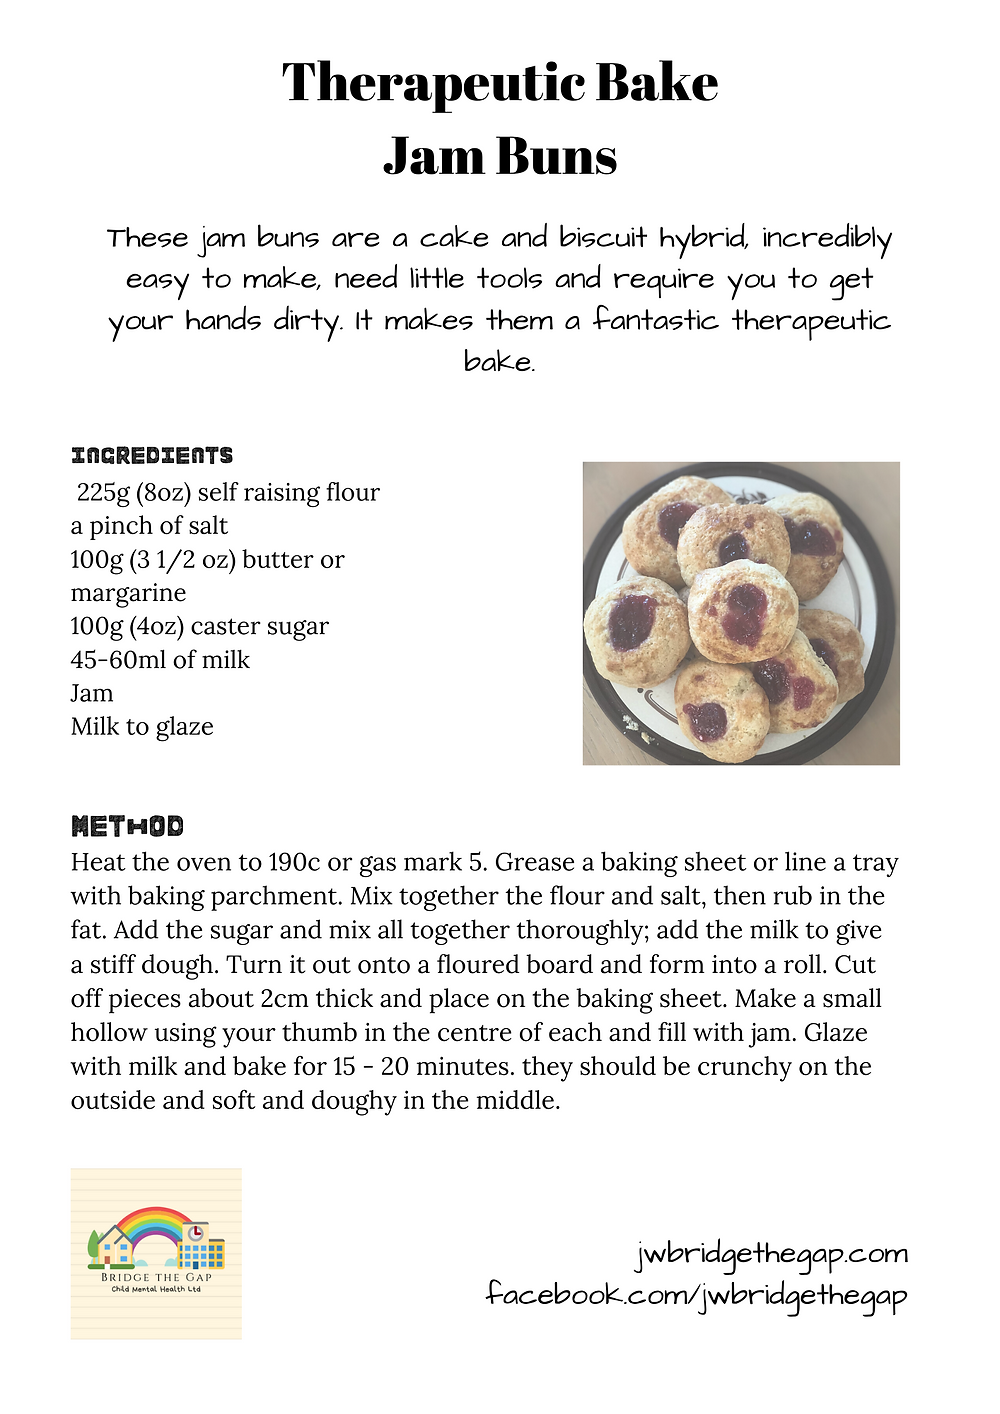 Download the recipe card here: